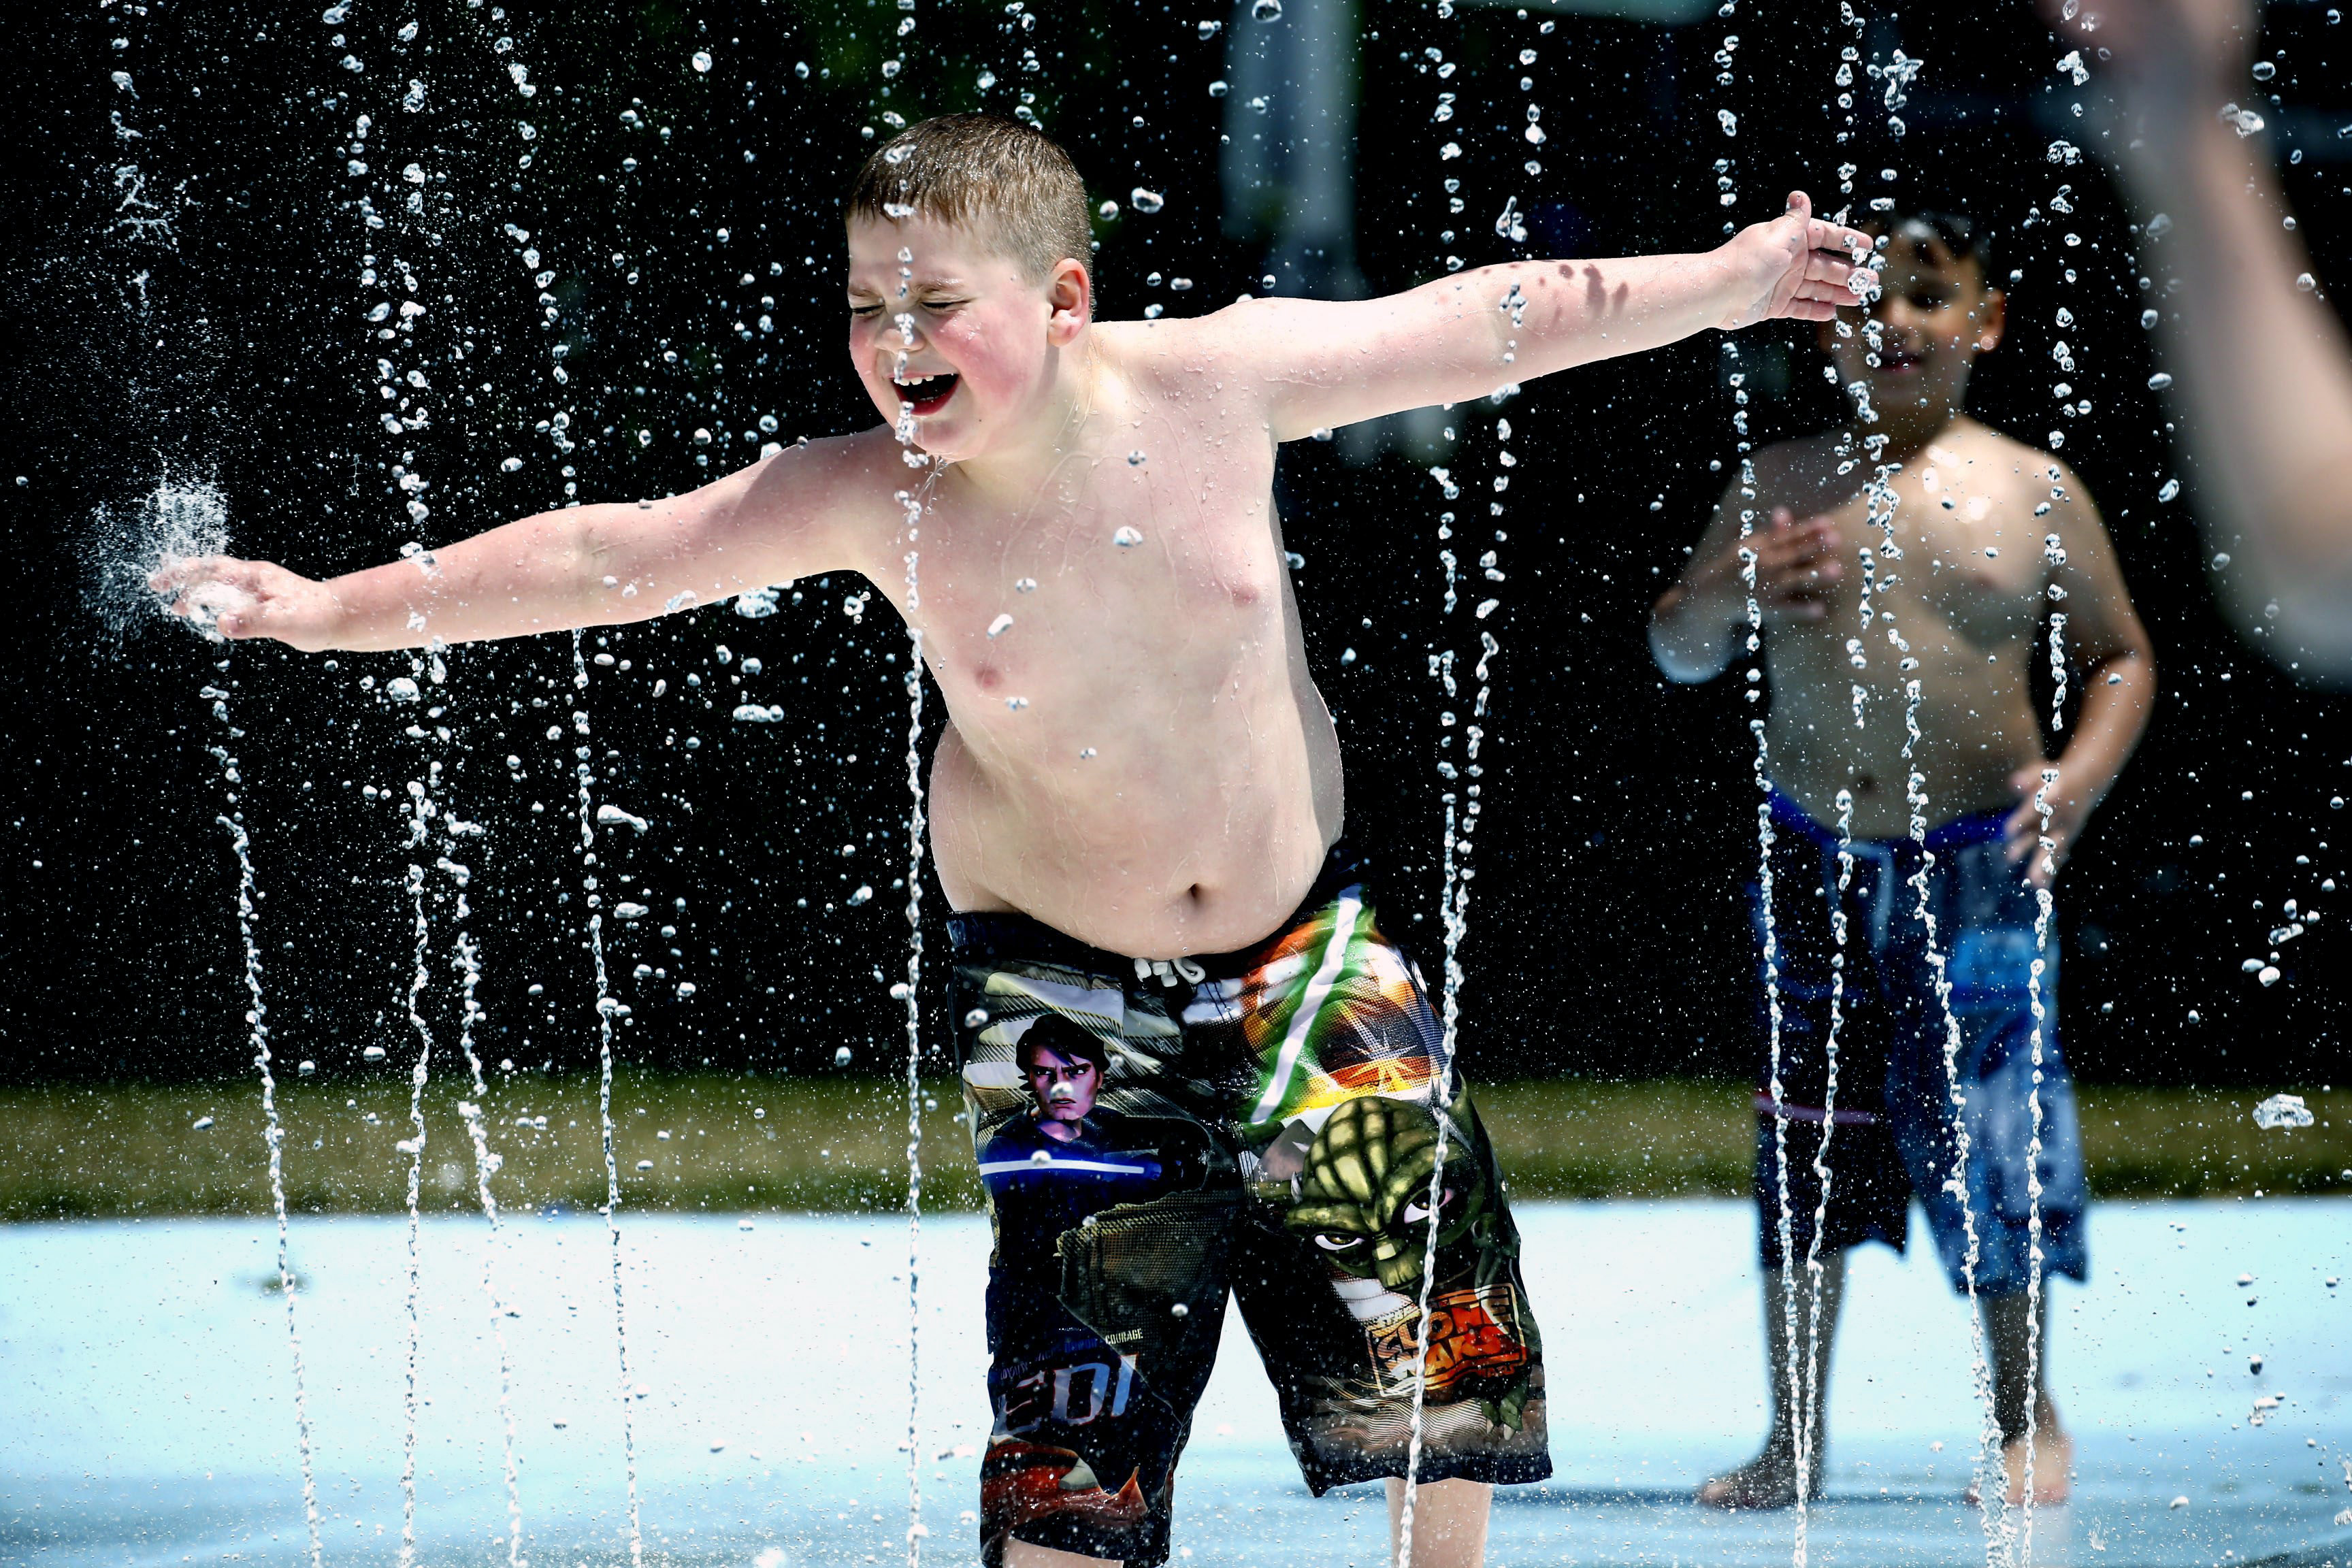 Braden Diebel, 8, enjoys the refreshing fountain of water at the Lasalle Park splash pad in Buffalo on Monday, May 30, 2016.  (Robert Kirkham/Buffalo News)